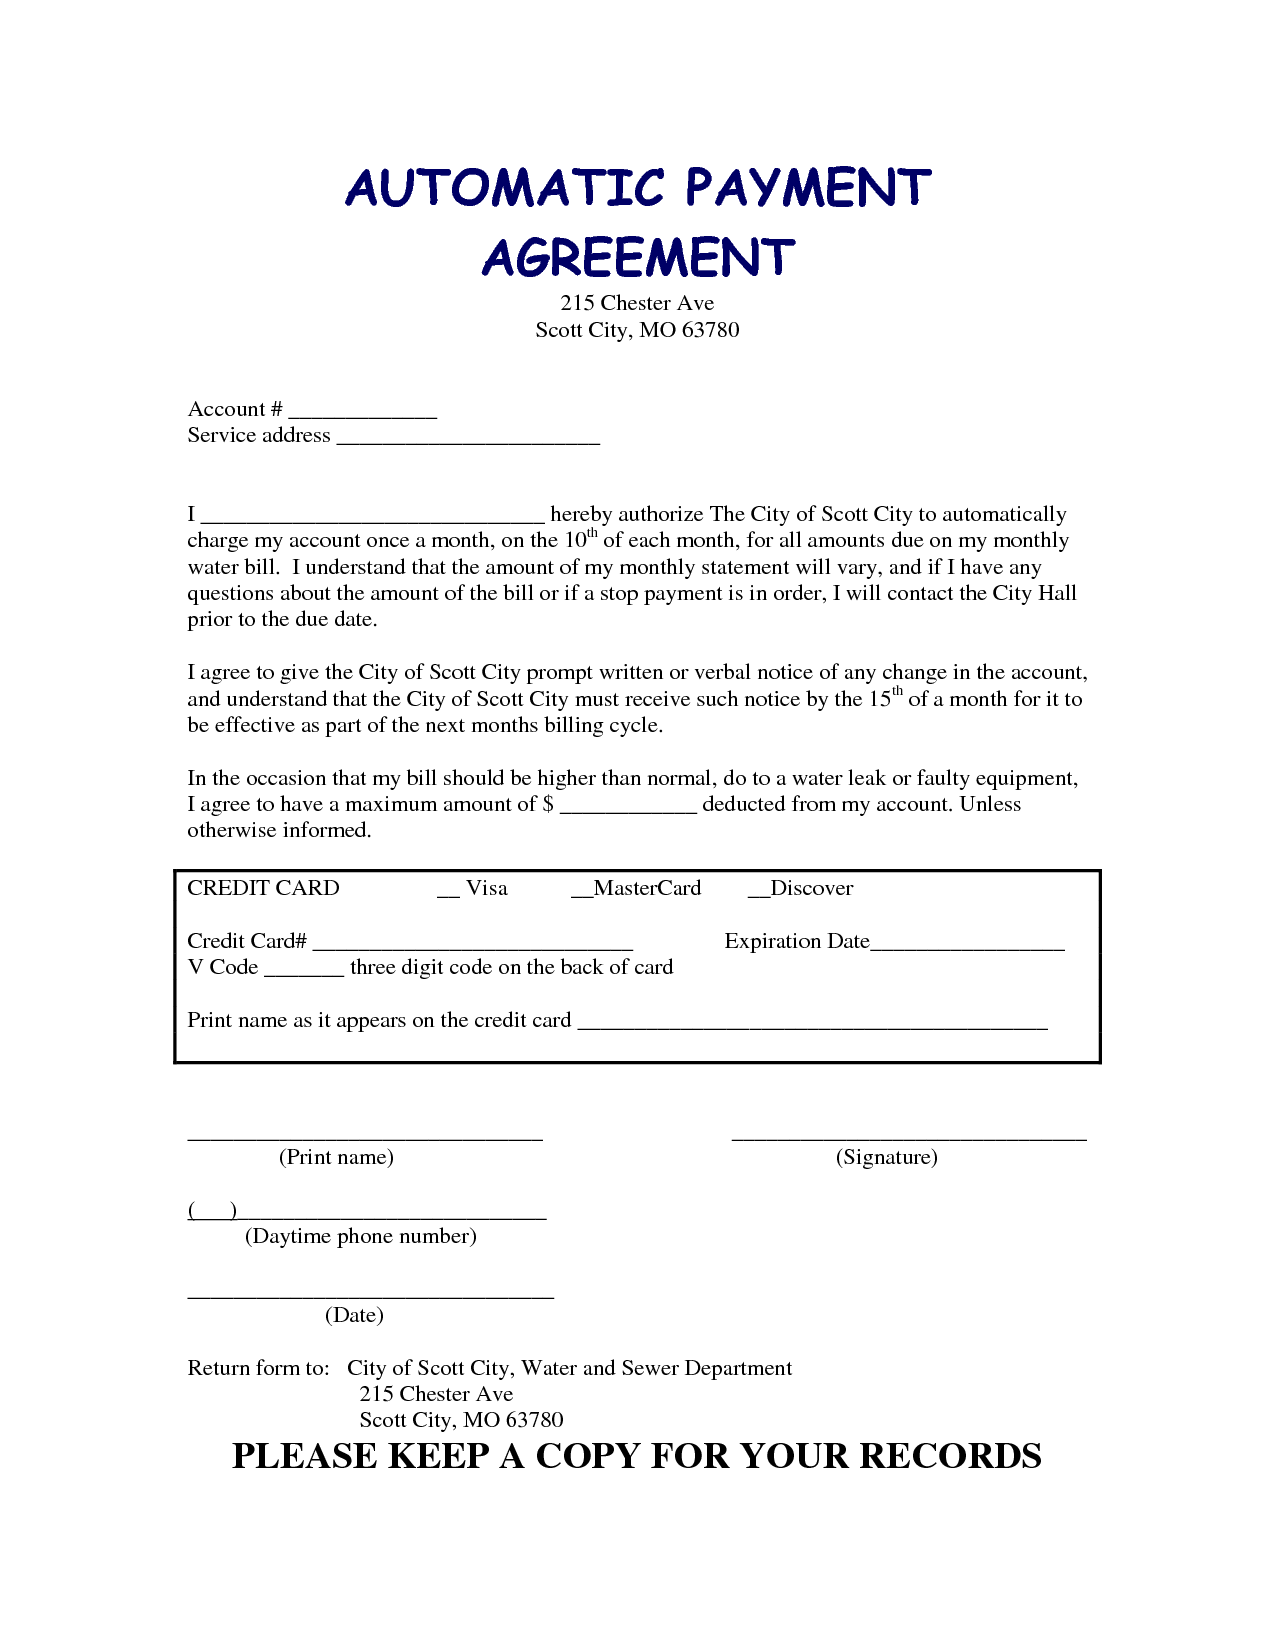 Car Payment Agreement Form Free Download